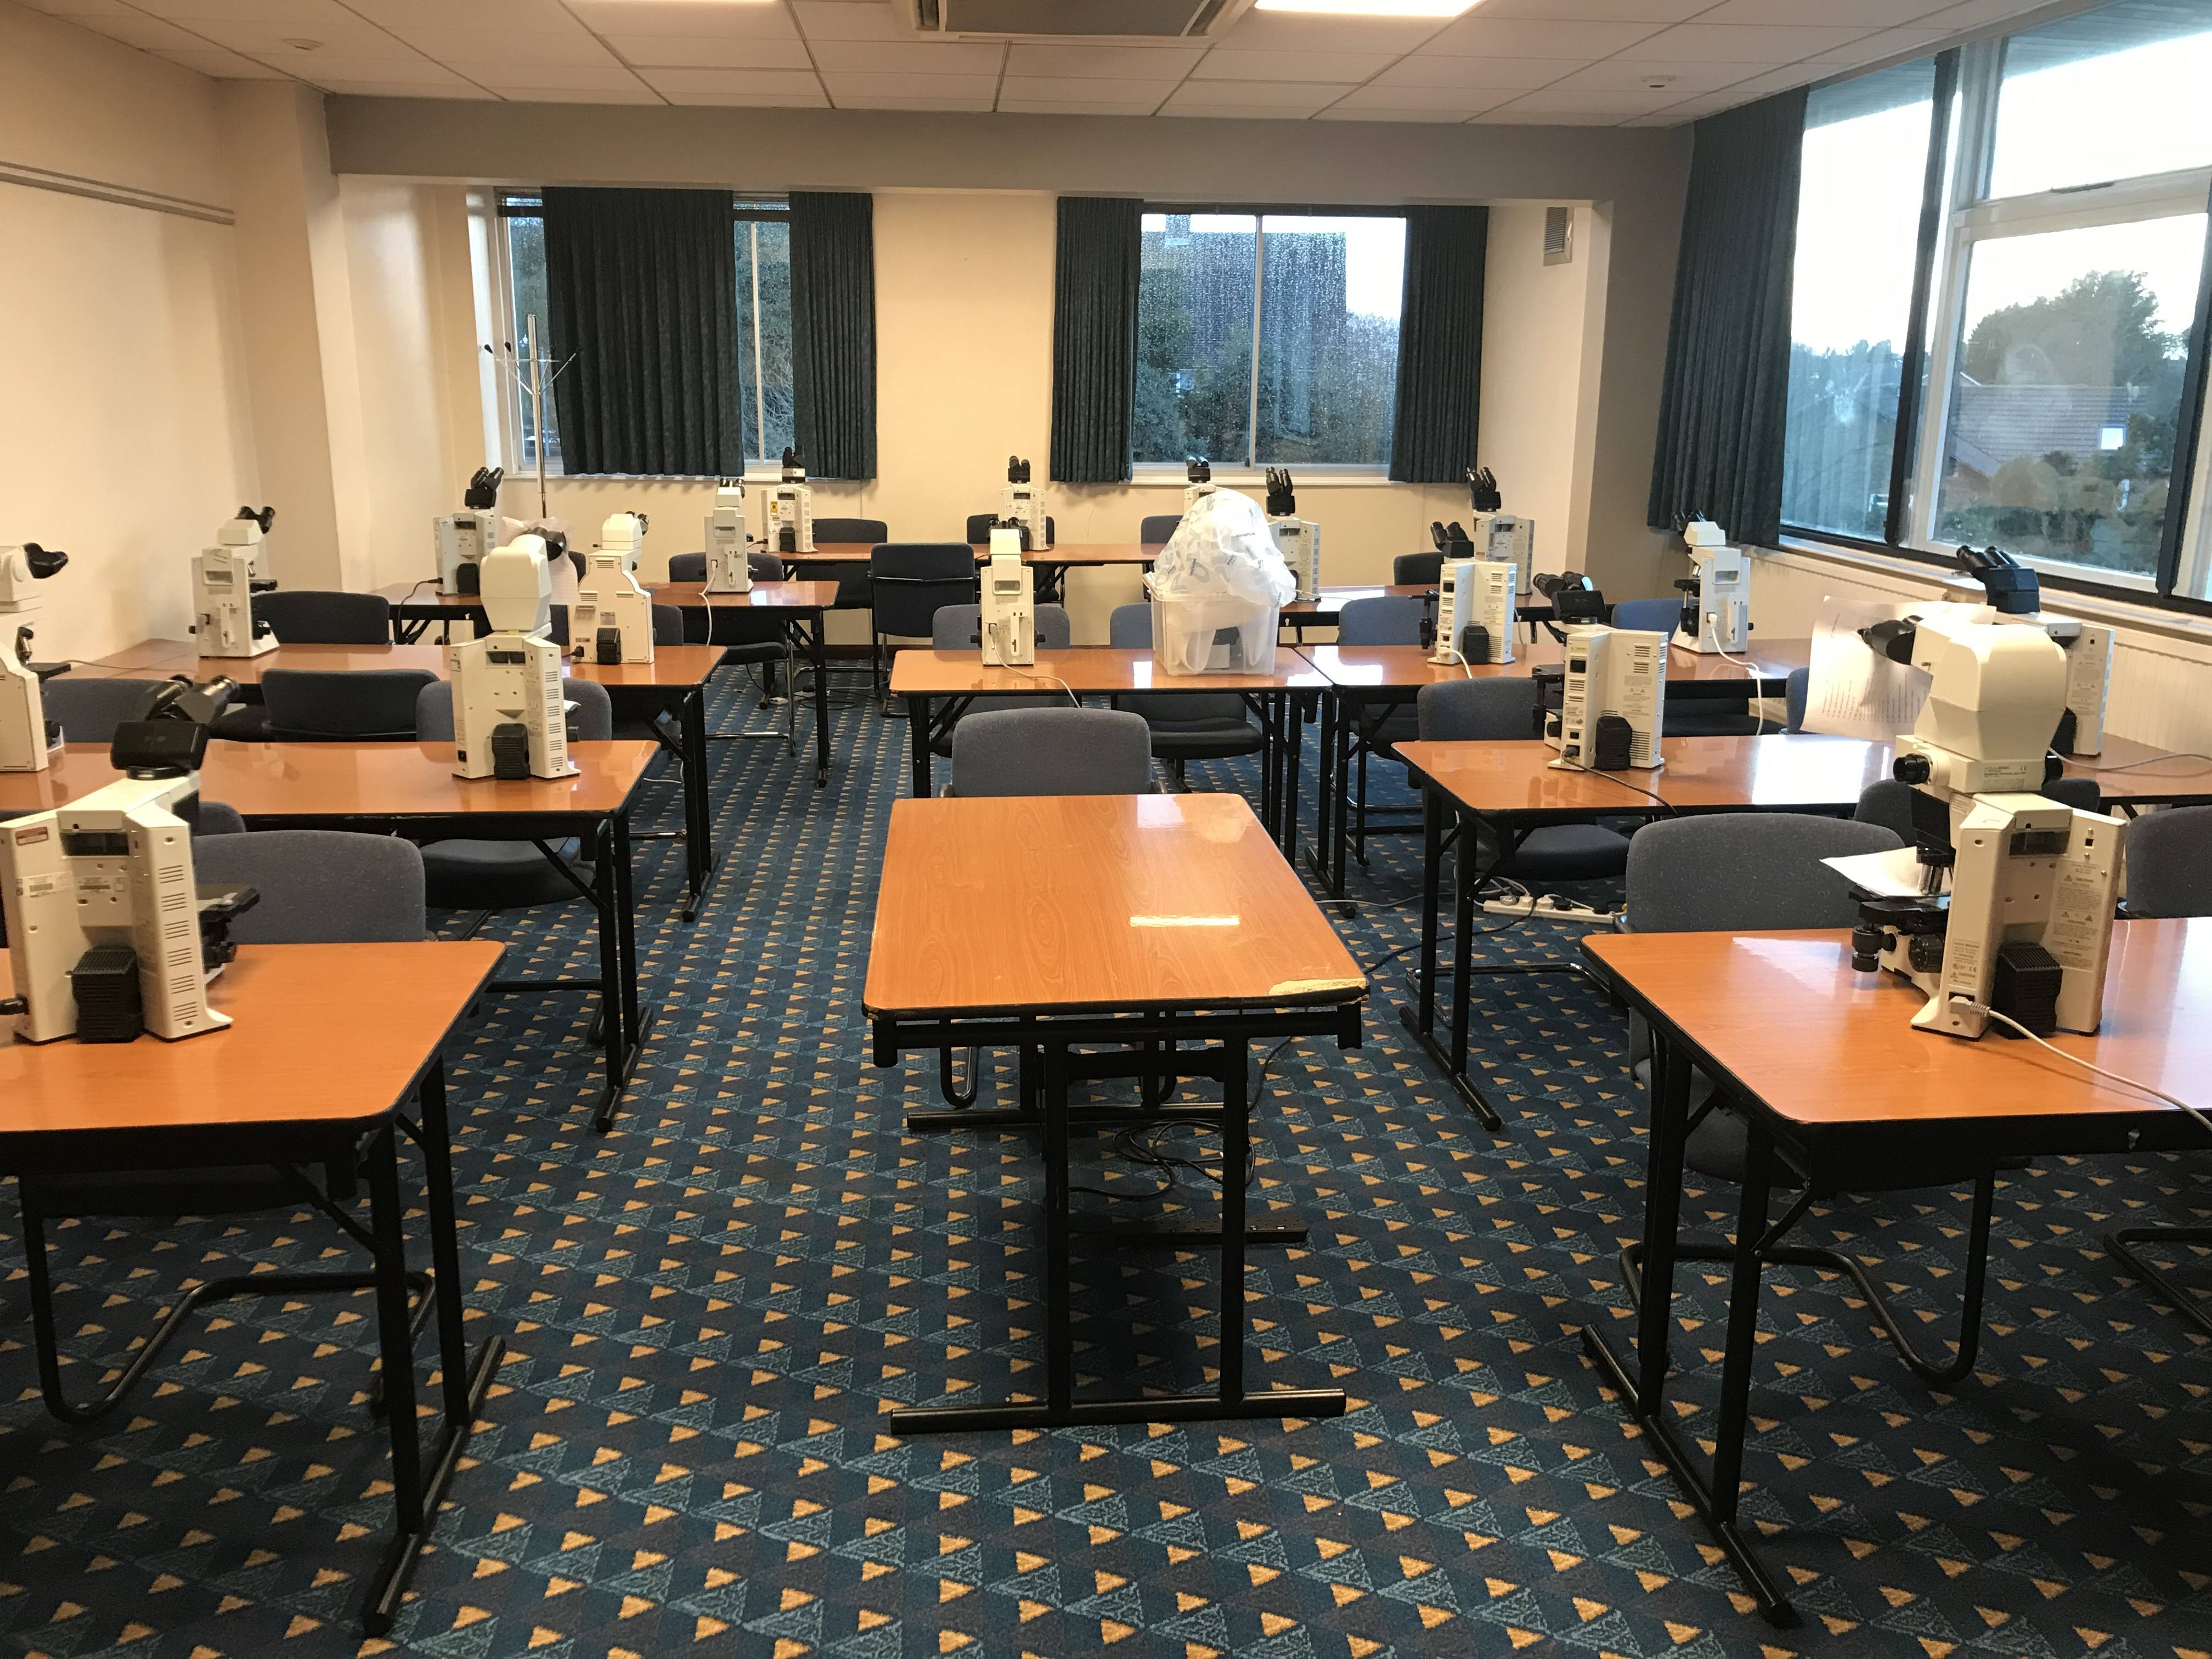 Park Inn Harlow Frcpath Part 2 Histopathology Revision Course And Slideworkshop